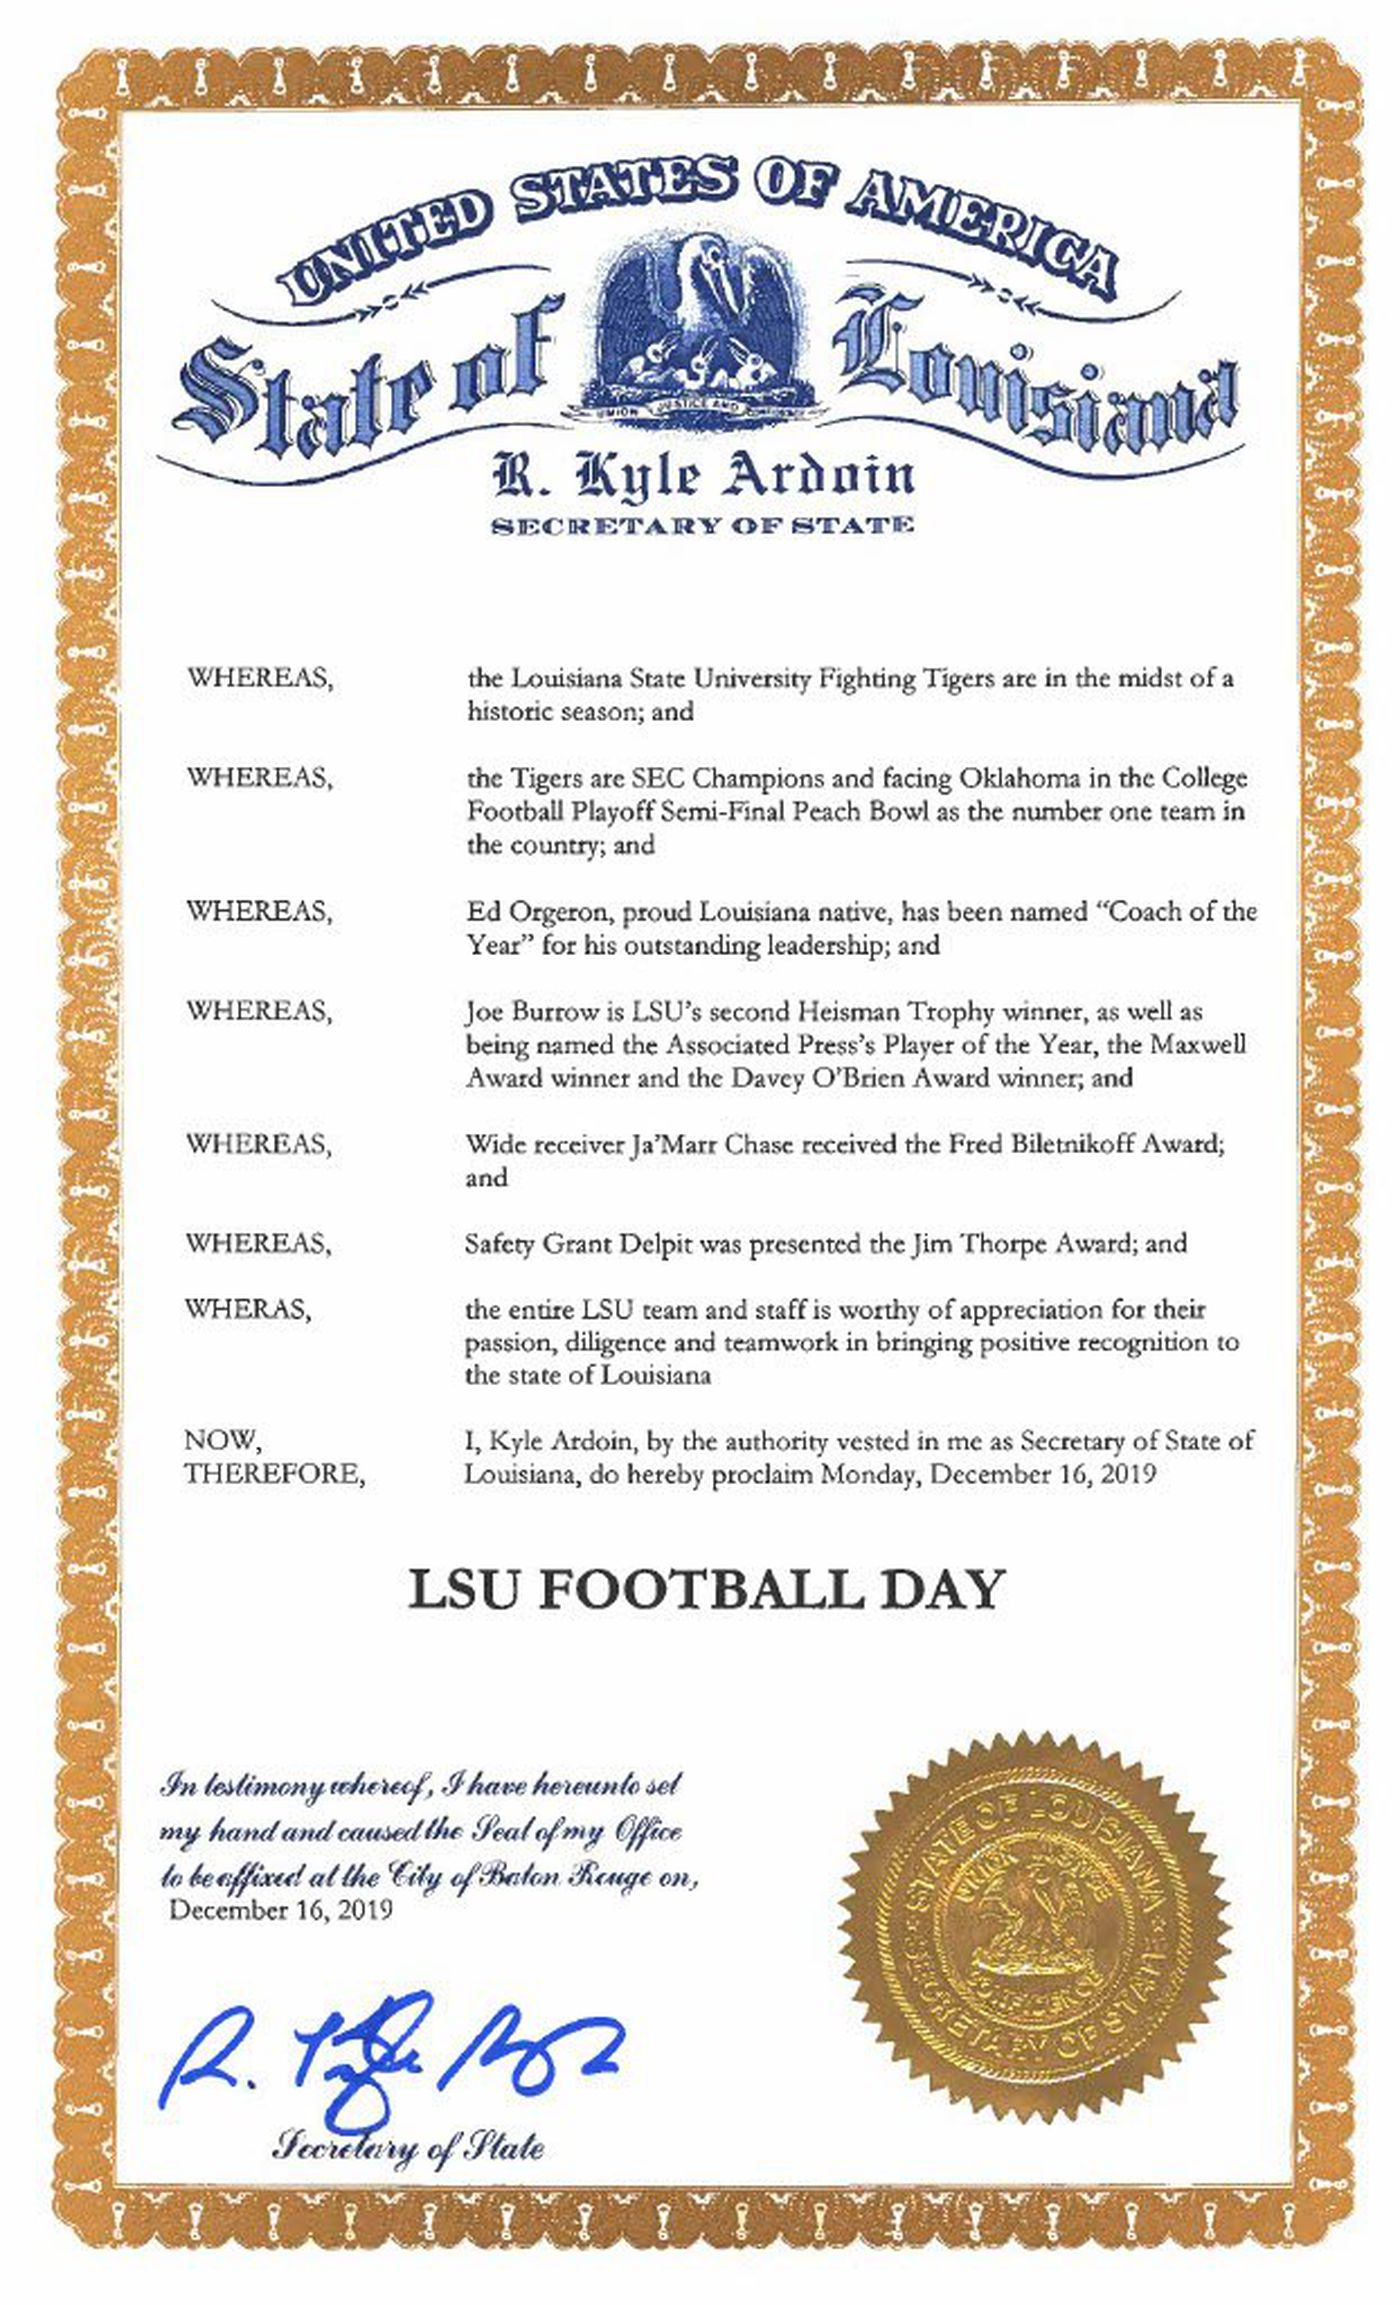 LSU Football Day